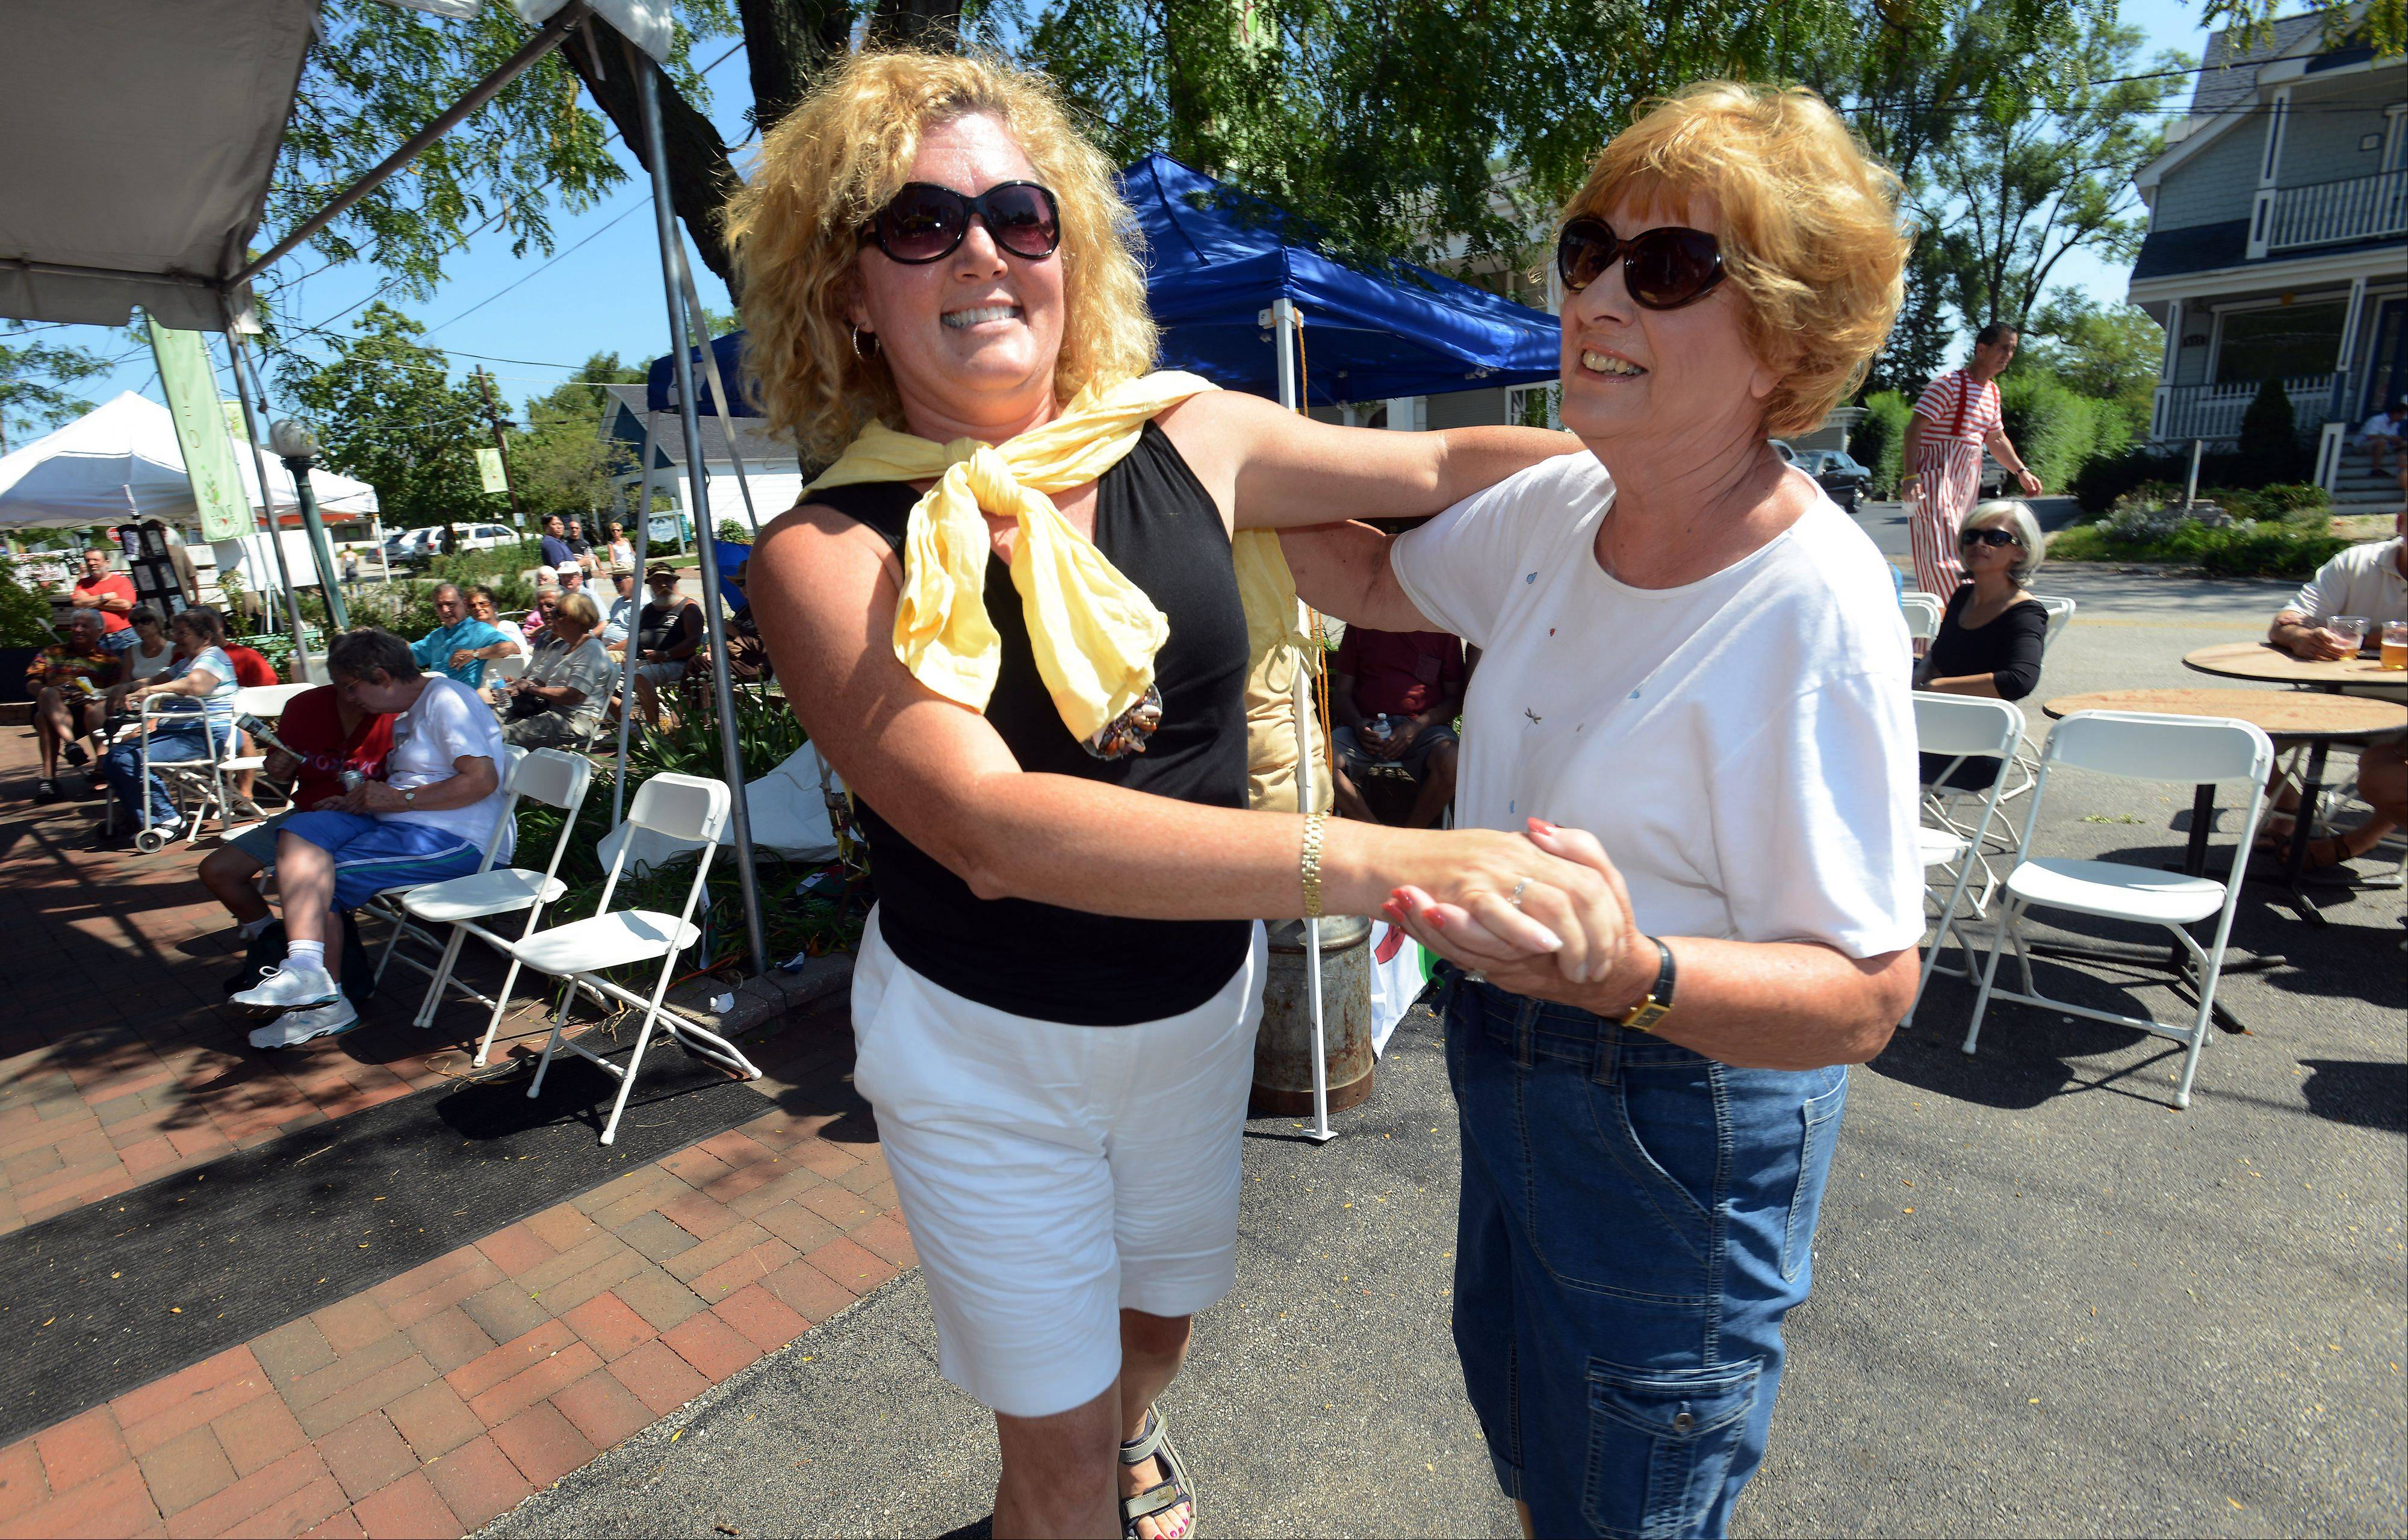 Mashelle Pavey of Naperville, left, dances with Corinne Madura of Norridge to the sounds of sweet music filling the streets of Long Grove's World Tour 2012 on Monday.